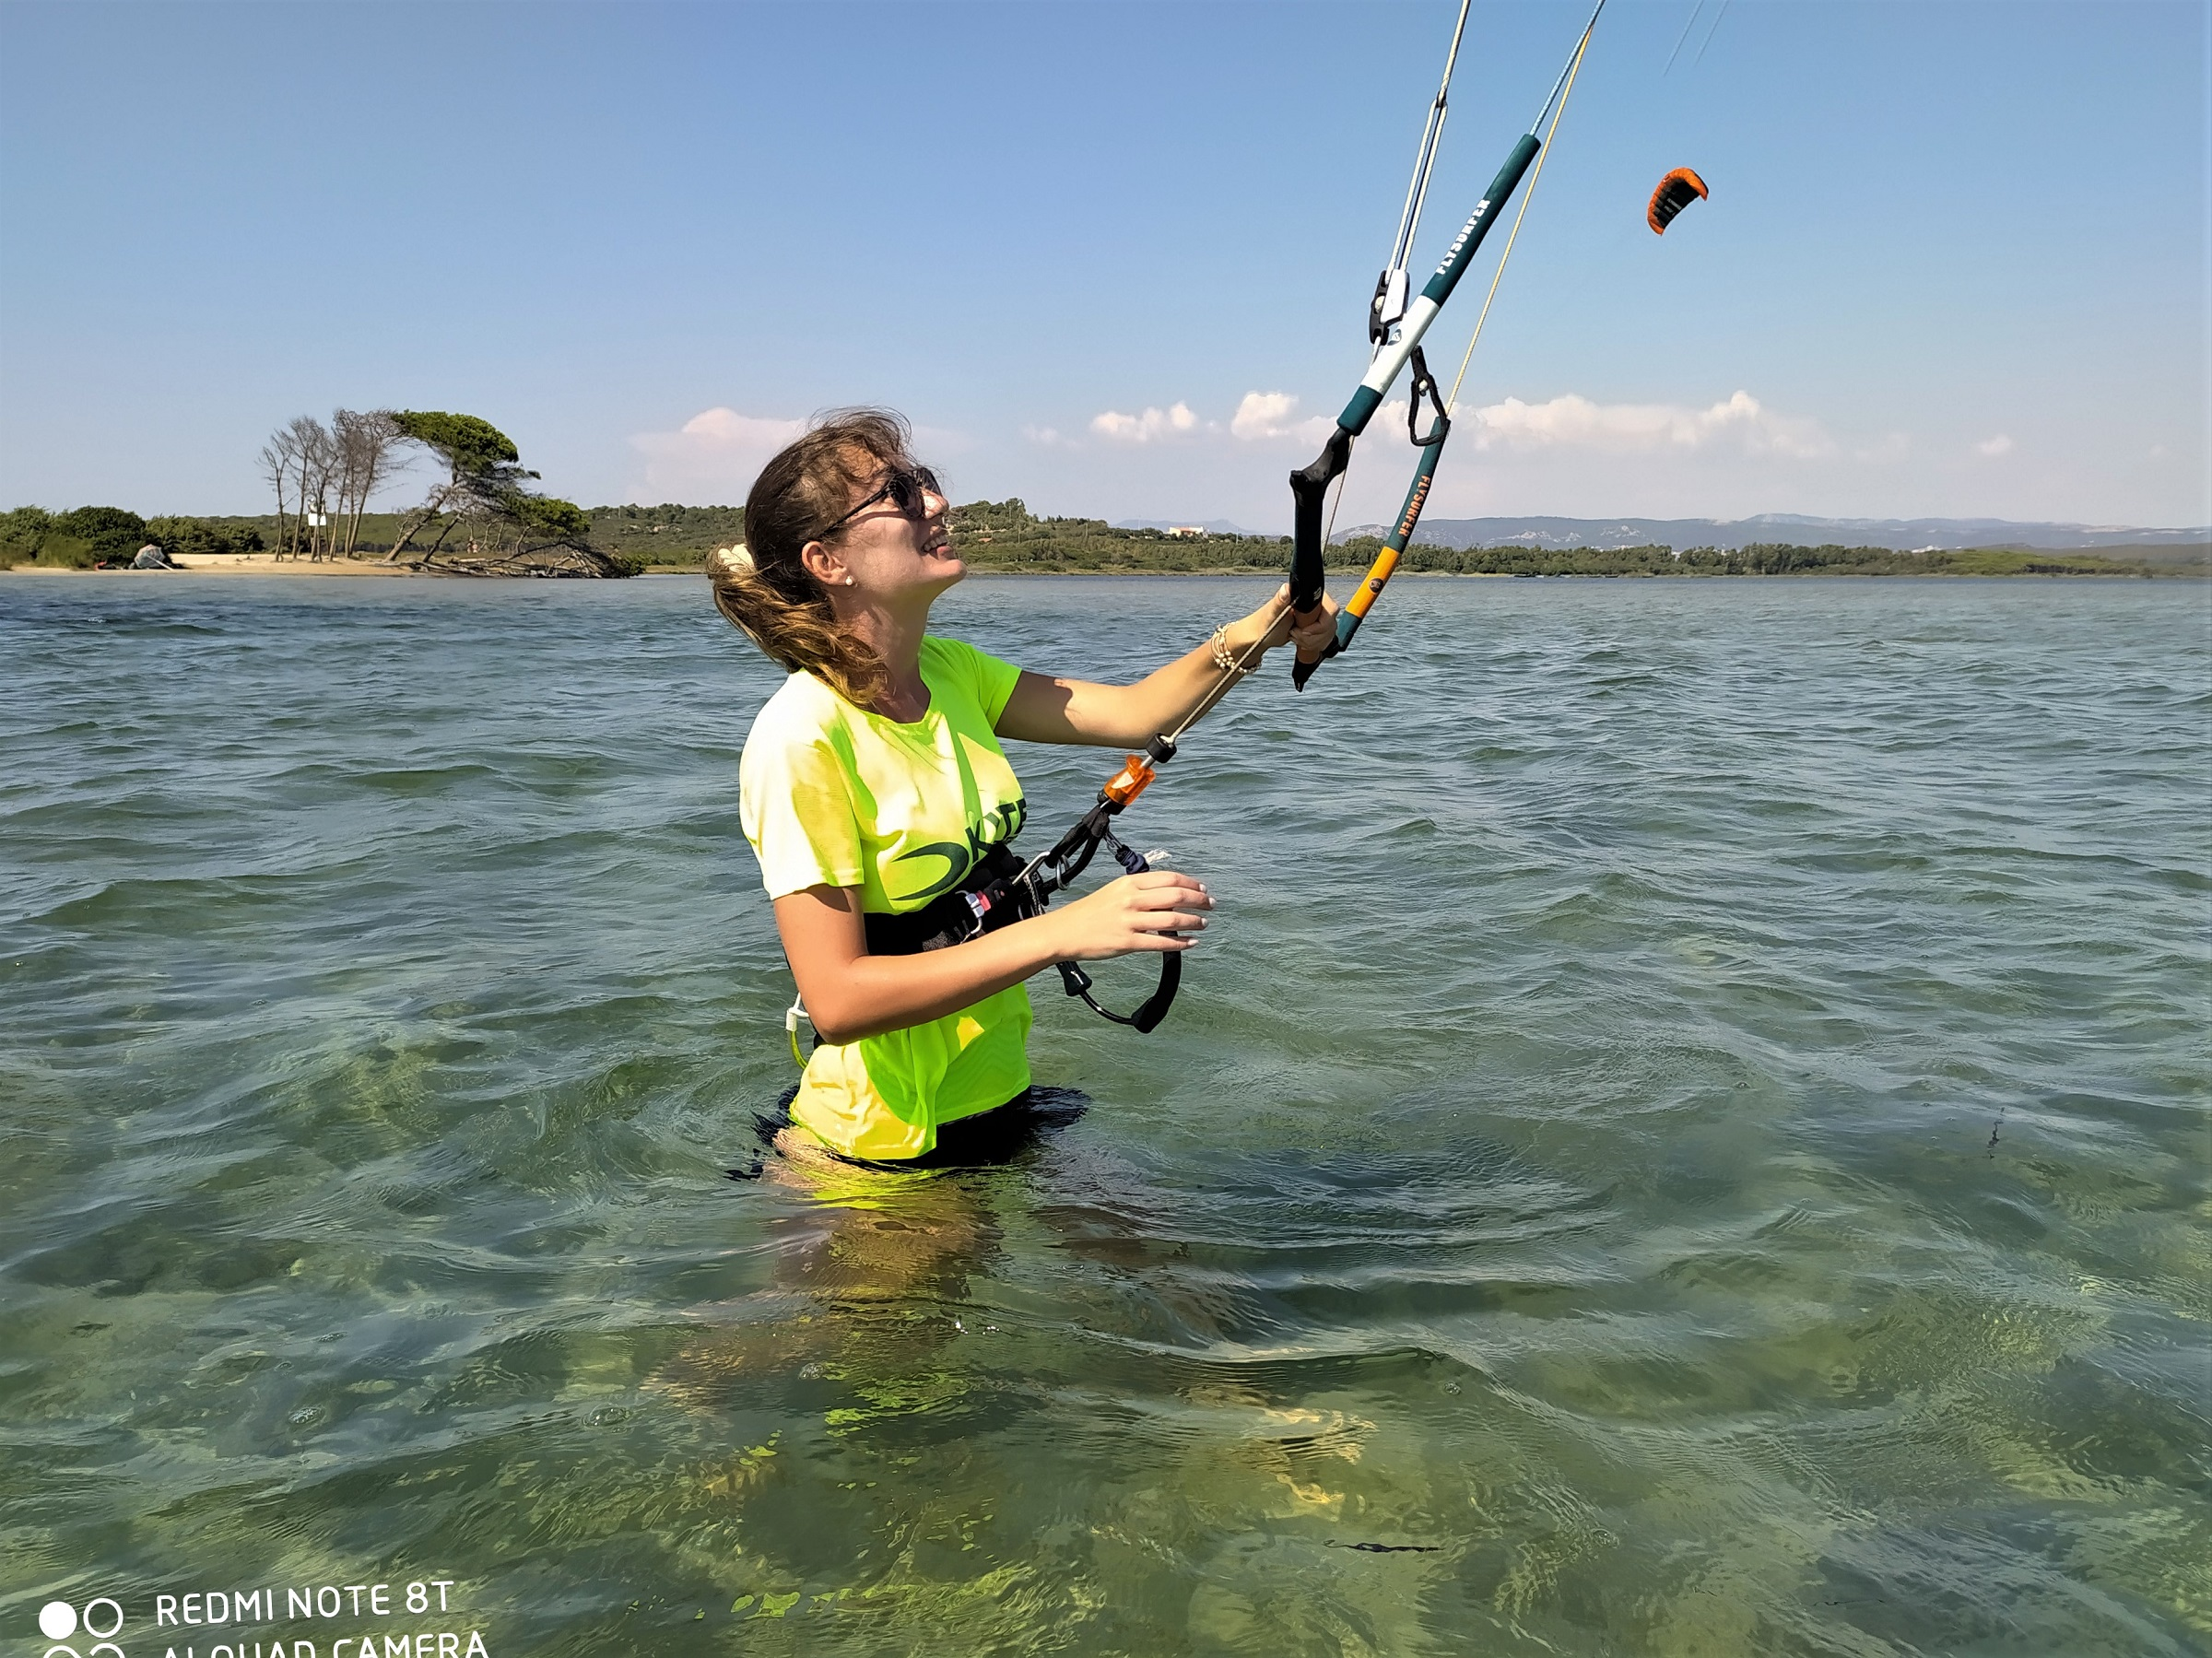 Learning Kitesurf at Punta Trettu Kite Beach with shallow and Flat Water